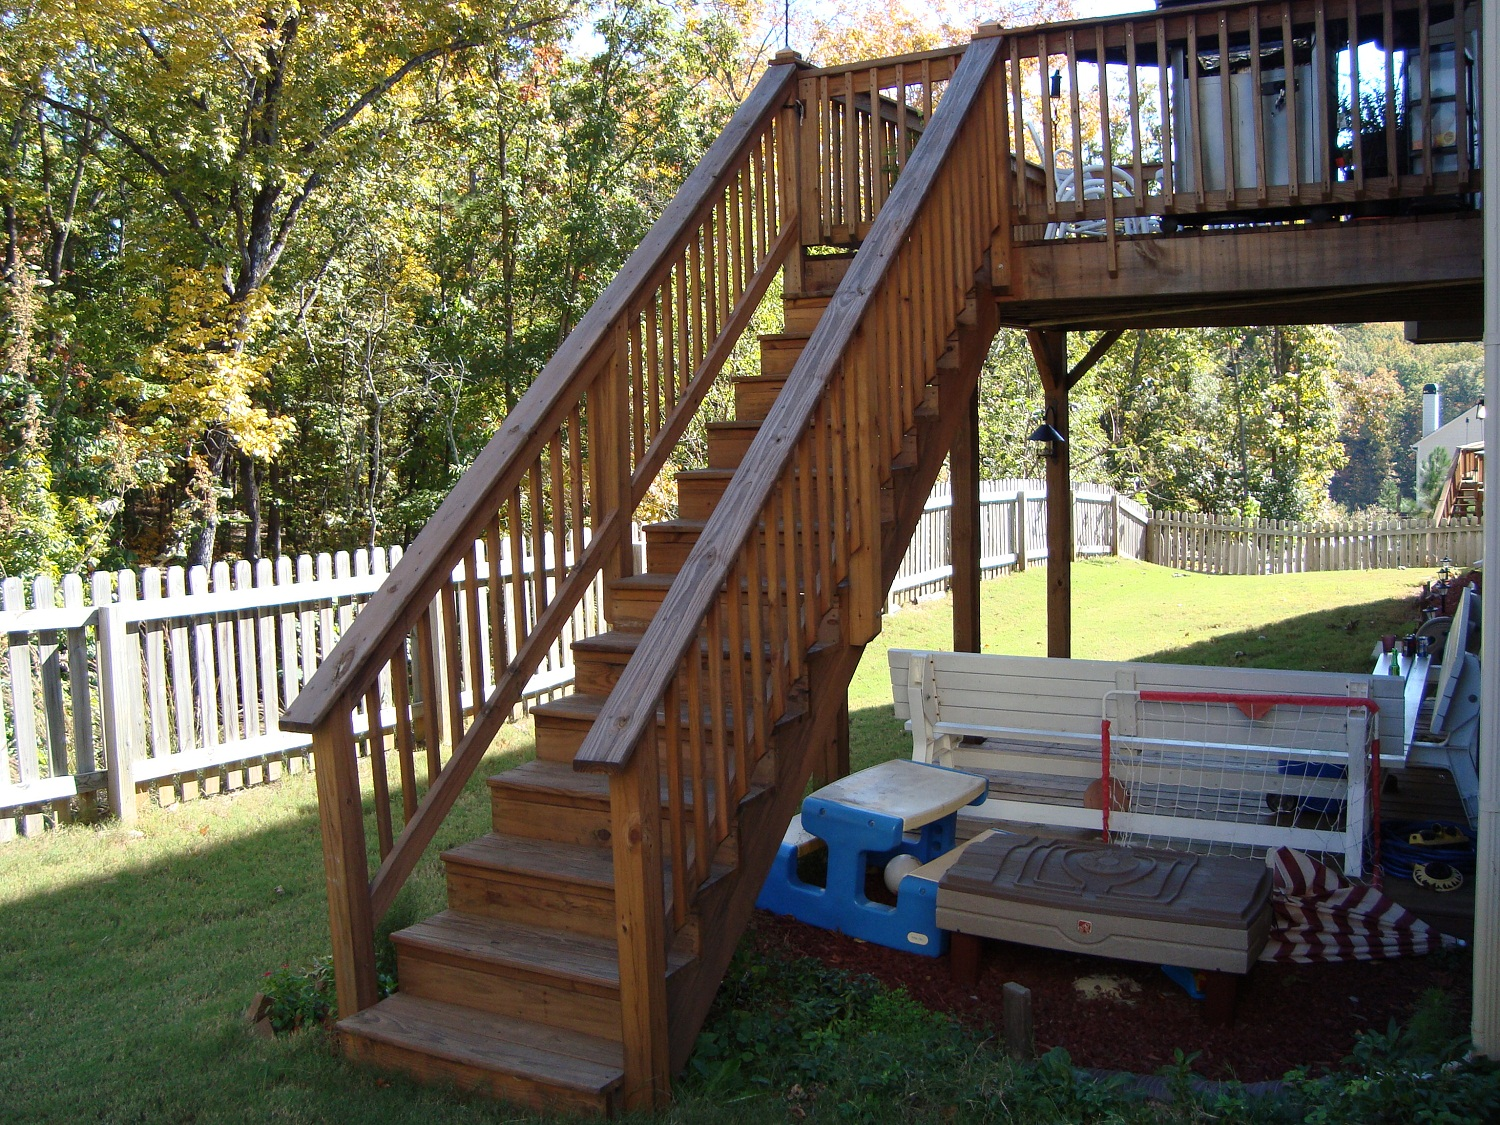 Deck Stair Brackets | How to Build Deck Steps Without Stringers | Build Deck Stairs